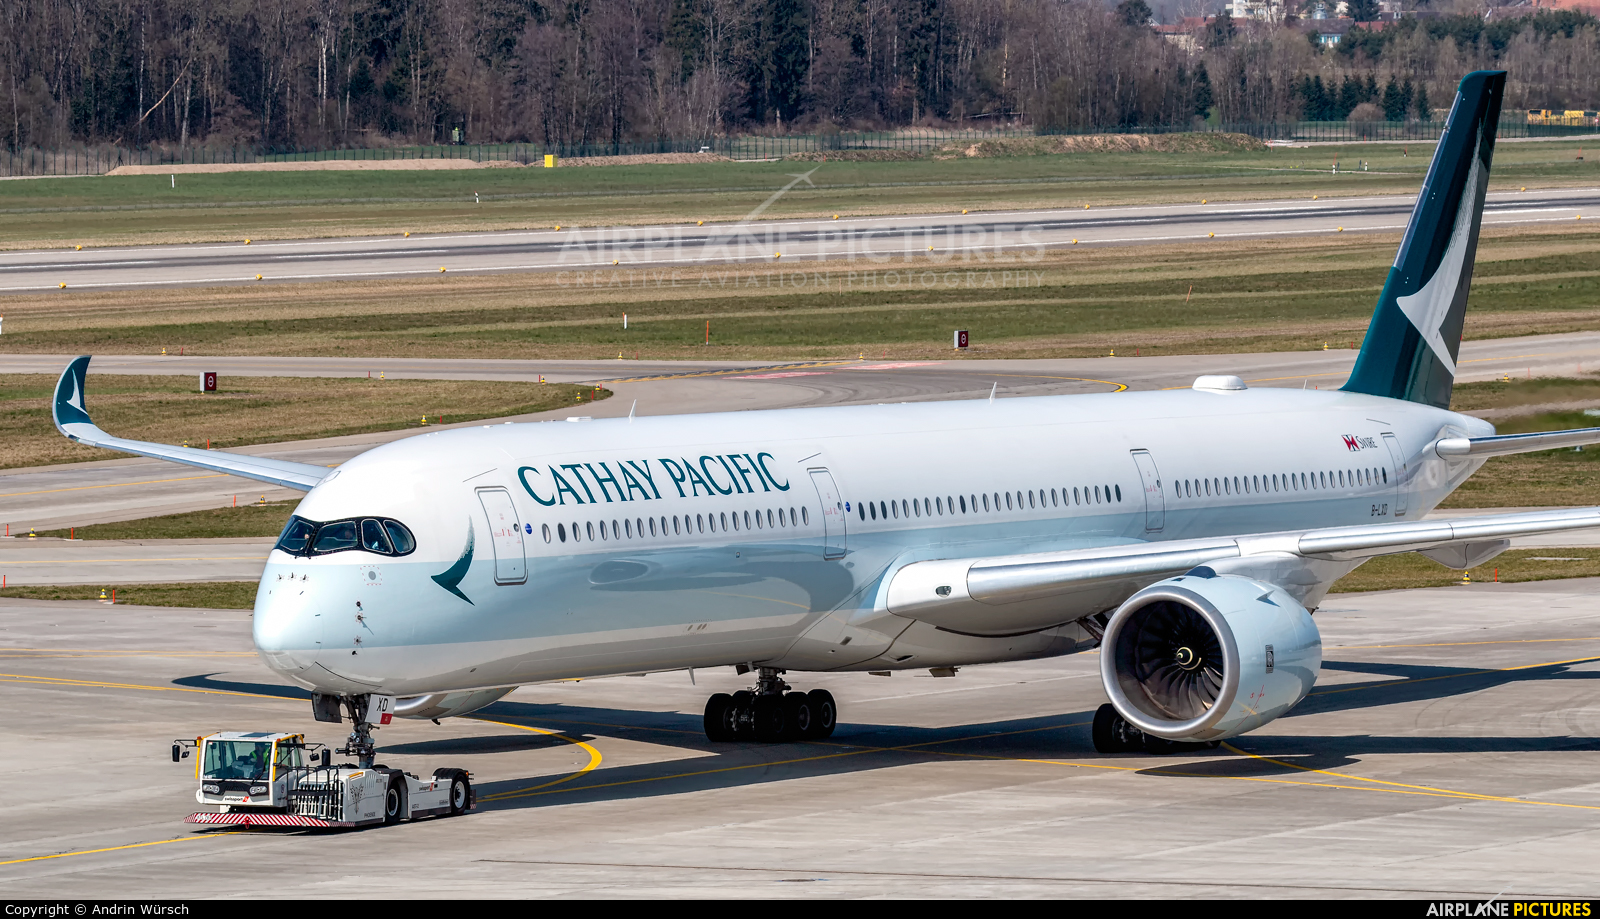 Cathay Pacific B-LXD aircraft at Zurich